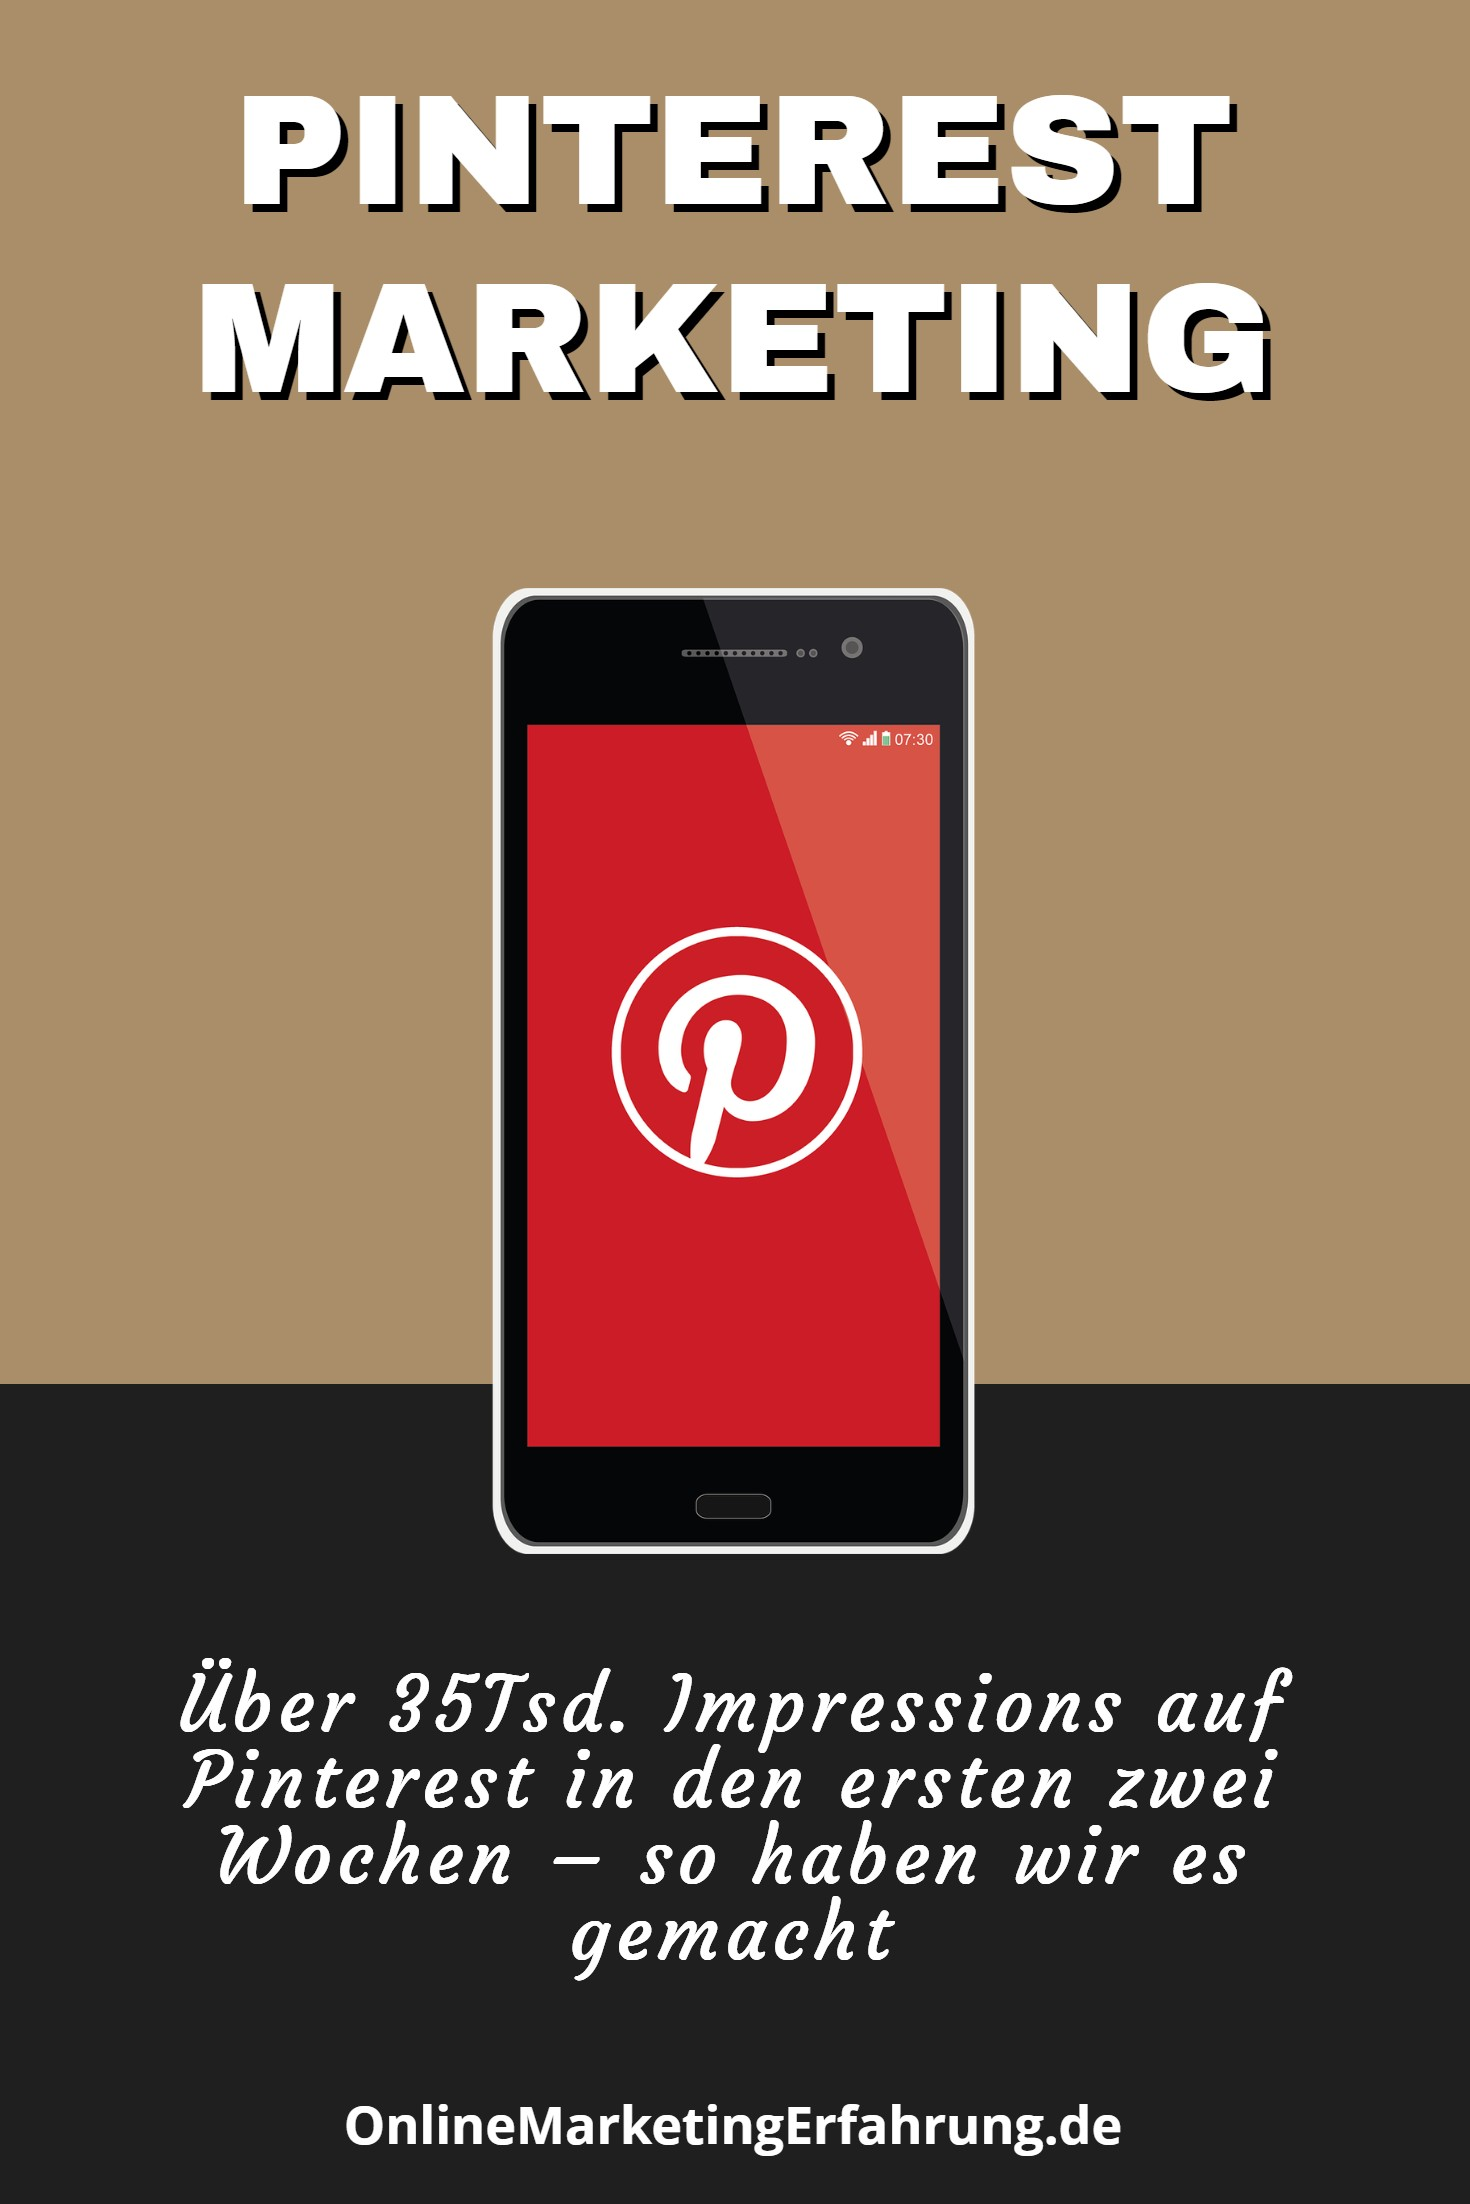 Pinterest Paid Ads Merken Platz 2